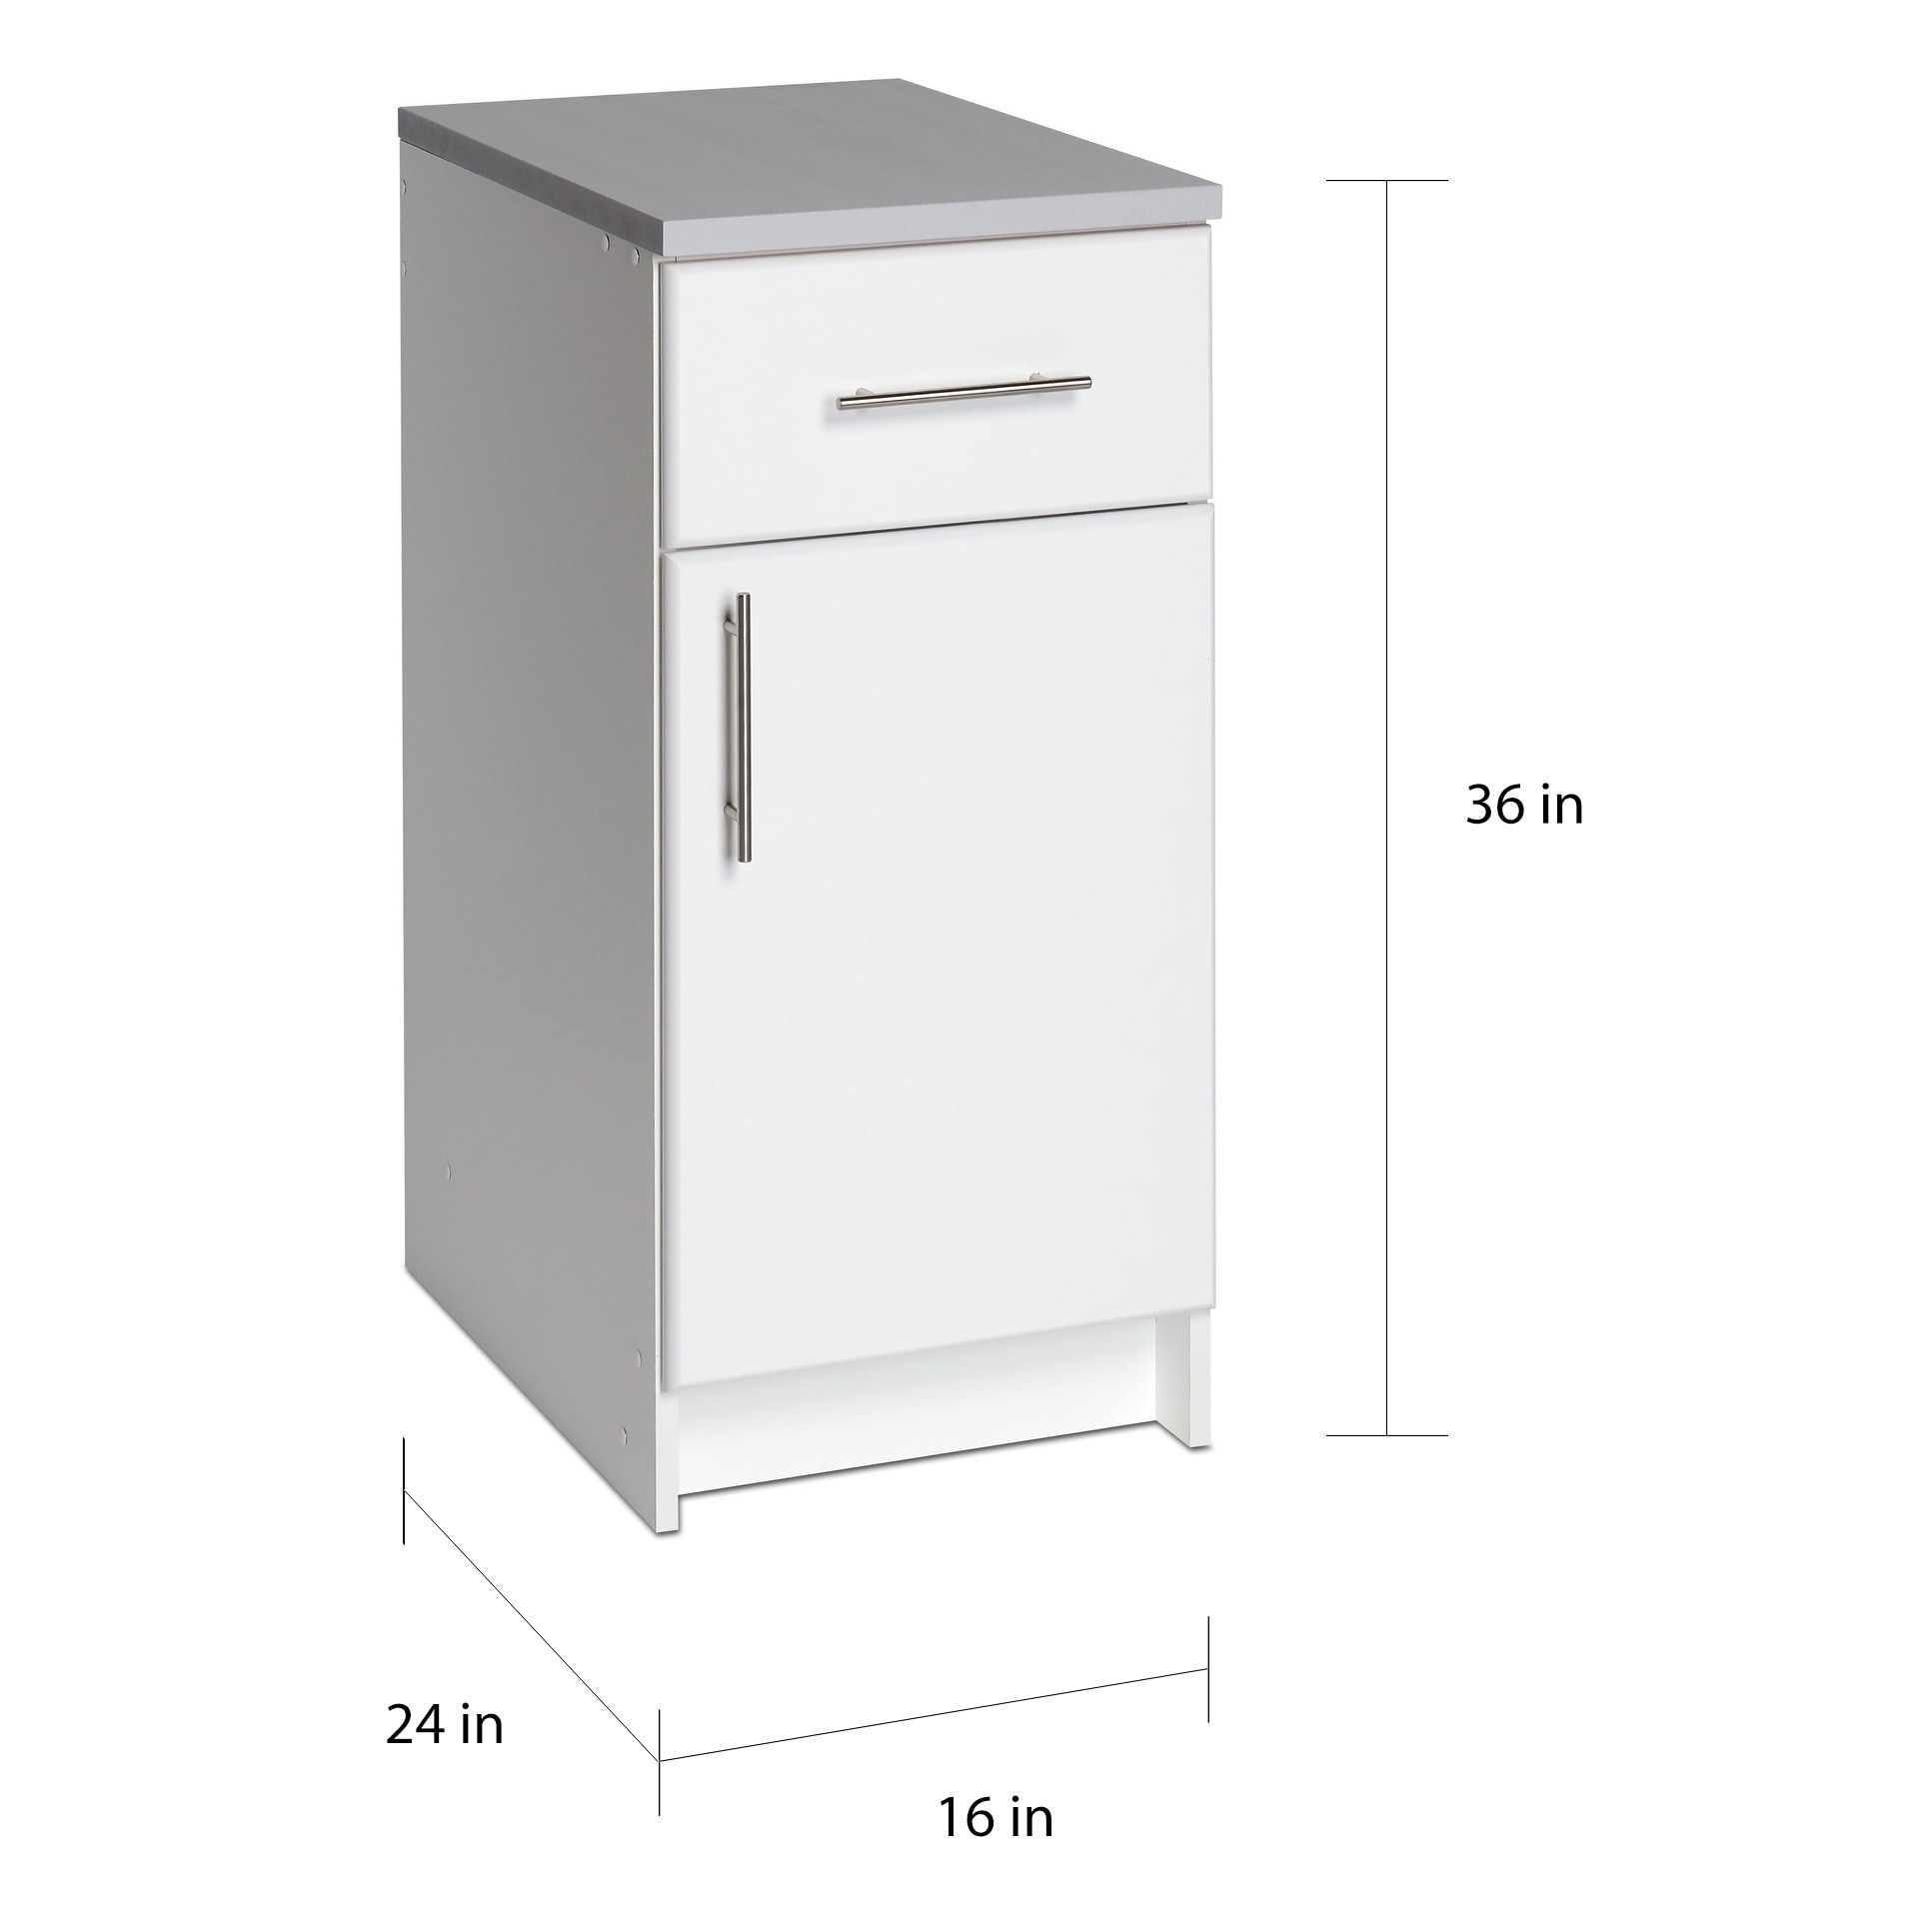 Prepac Winslow Elite 16 Inch Base Cabinet Multiple Finishes 16 Inch 16 Inch On Sale Overstock 6728157 Black